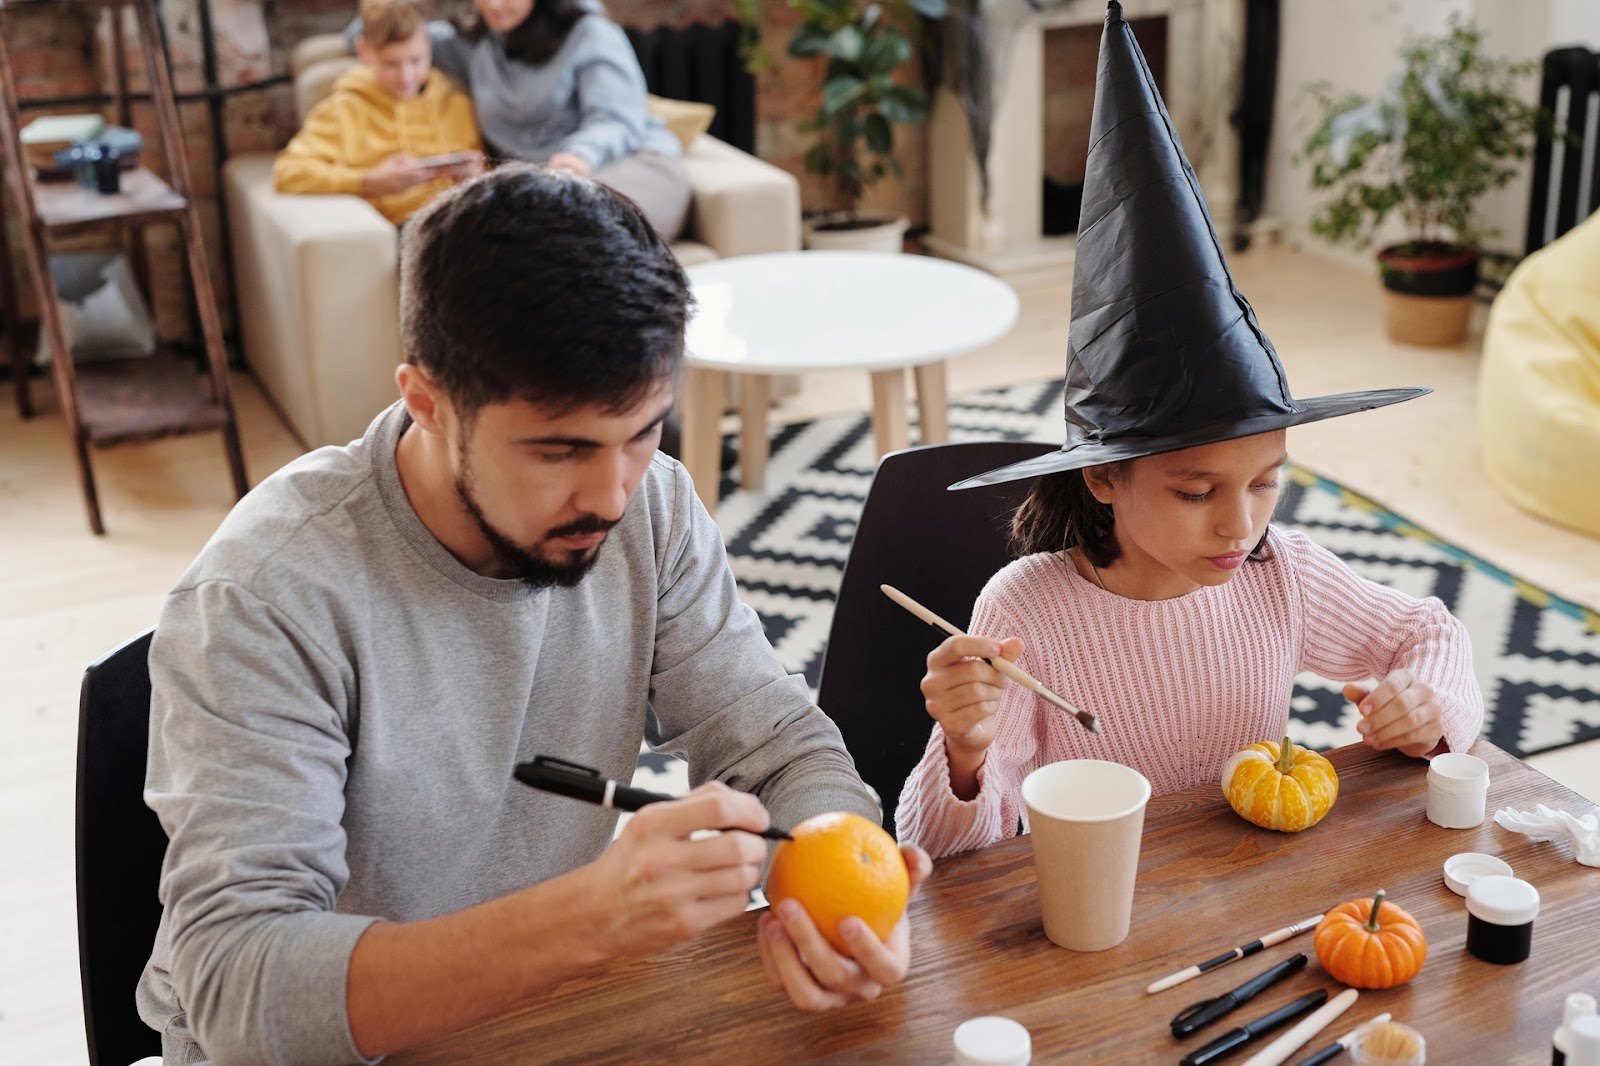 Man and child painting pumpkins as a fun autumn activity.